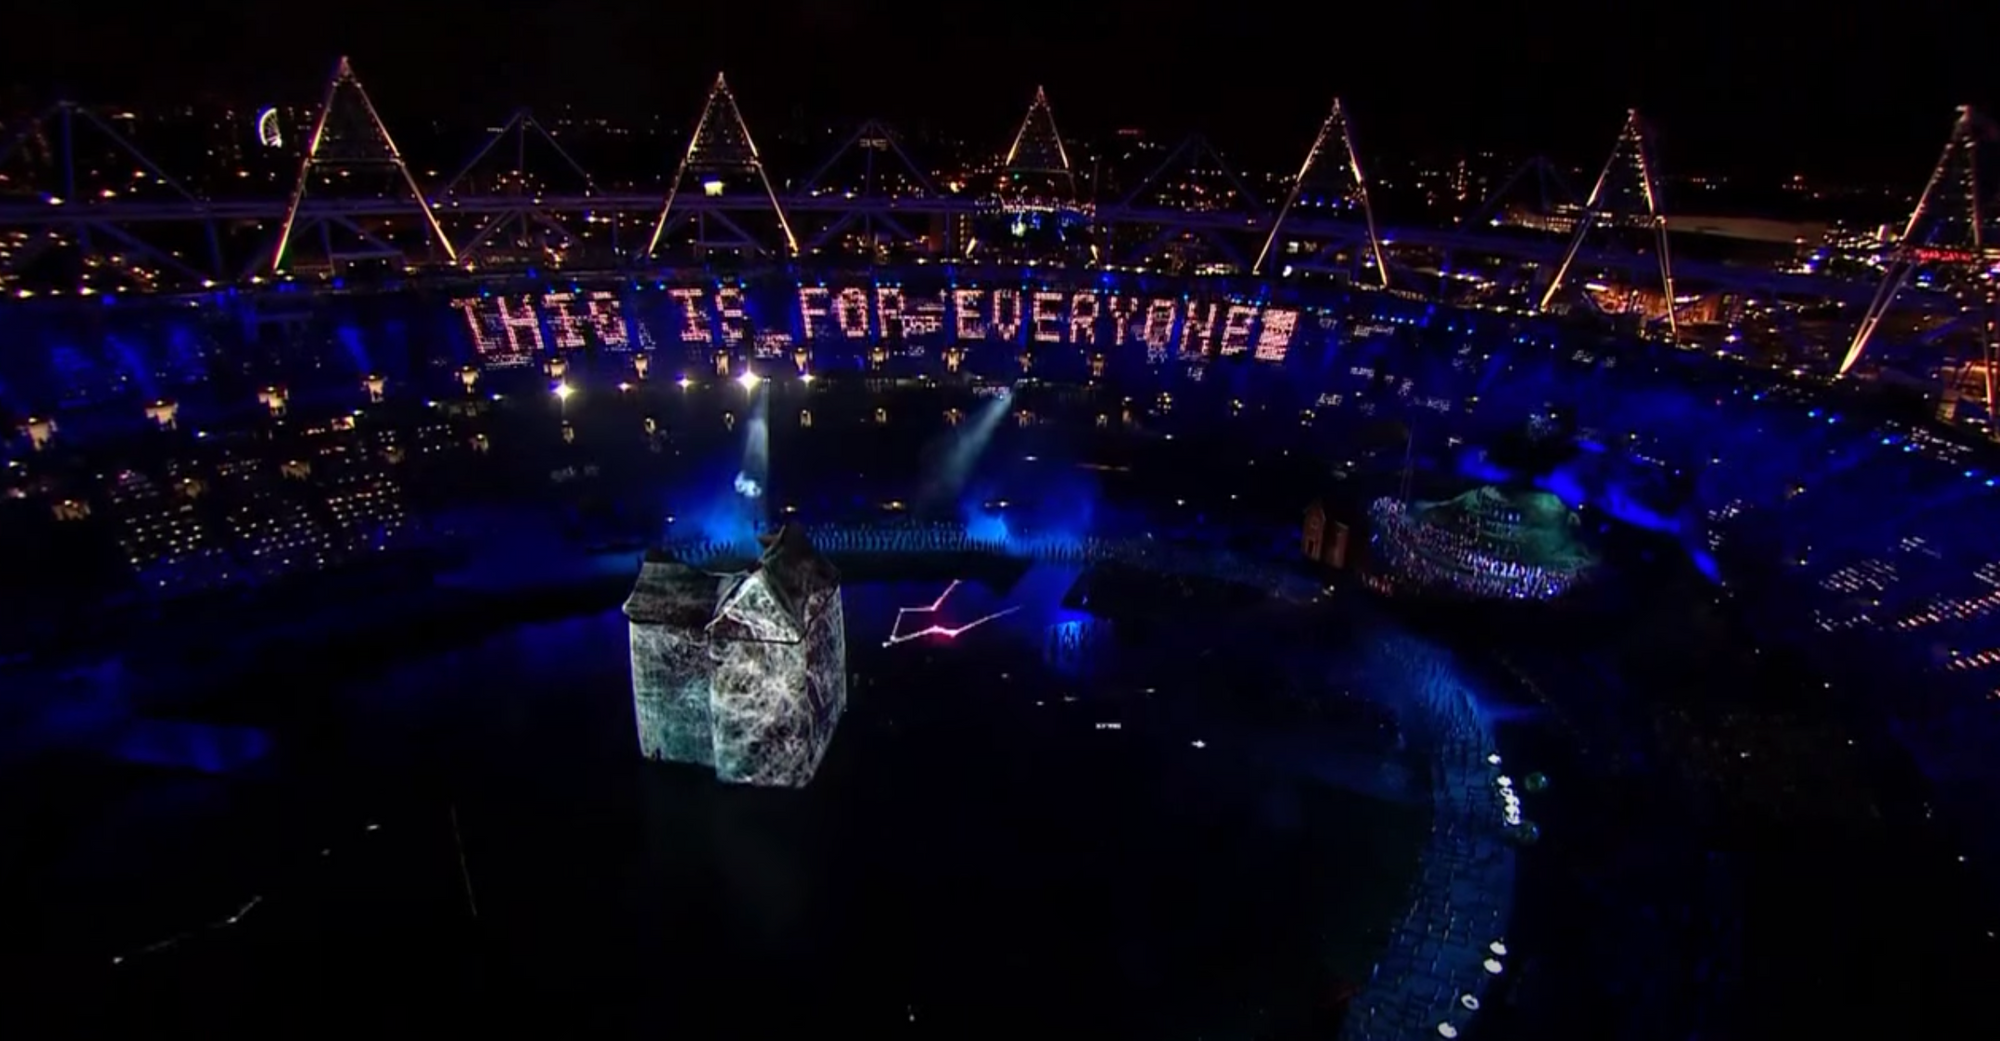 "Eight years ago, when Cloudflare was just two, the creator of the World Wide Web, Tim Berners-Lee, sent a message from the opening ceremony of the 2012 Olympics. That message read ""This is for everyone"" and the idea that the Internet is for all of us continues to be a key part of Cloudflare's ethos today."